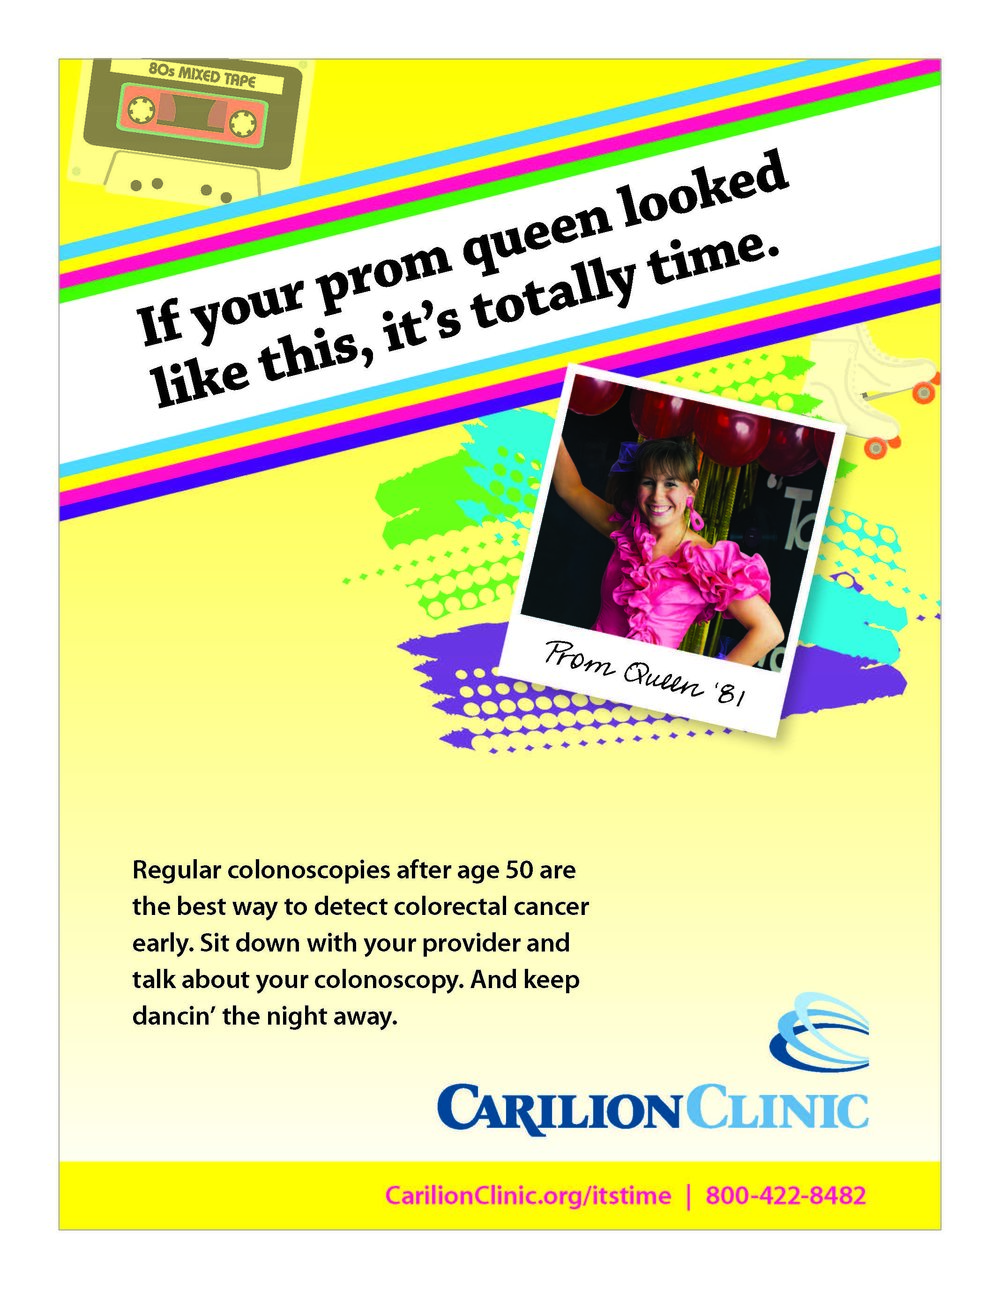 G89462 Colon Cancer Promotion Flyer_1980s Prom Queen.jpg